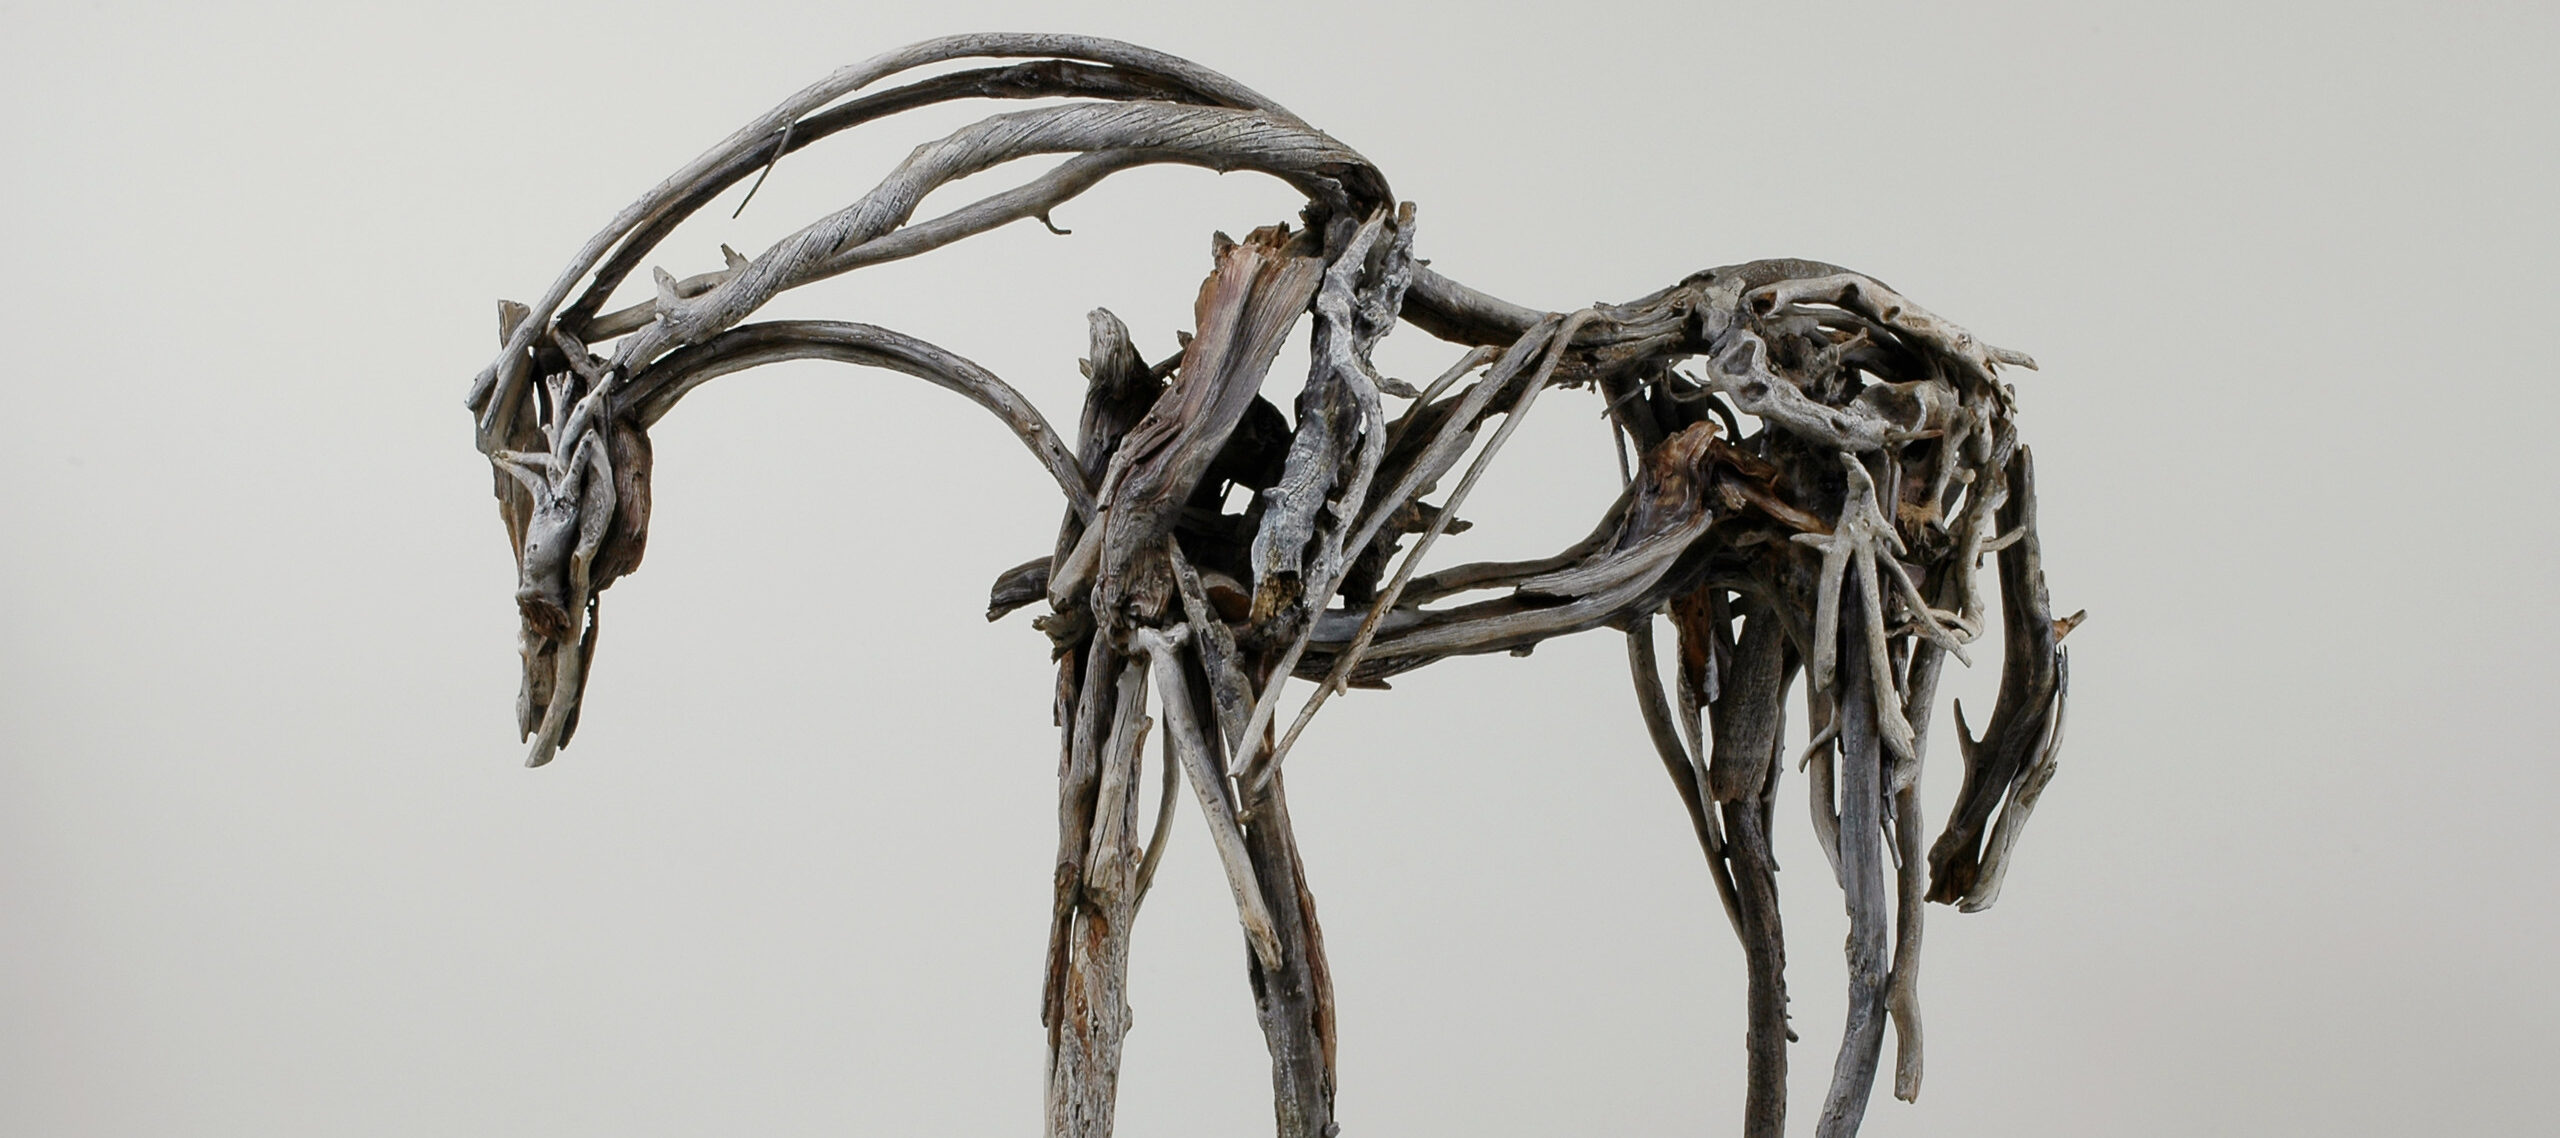 Deborah Butterfield, <i>Big Horn</i>, 2006; Cast bronze, 92 x 114 x 41 in.; National Museum of Women in the Arts, Gift of Jacqueline Badger Mars in honor of Wilhelmina Cole Holladay; © Deborah Butterfield; Image courtesy of L.A. Louver